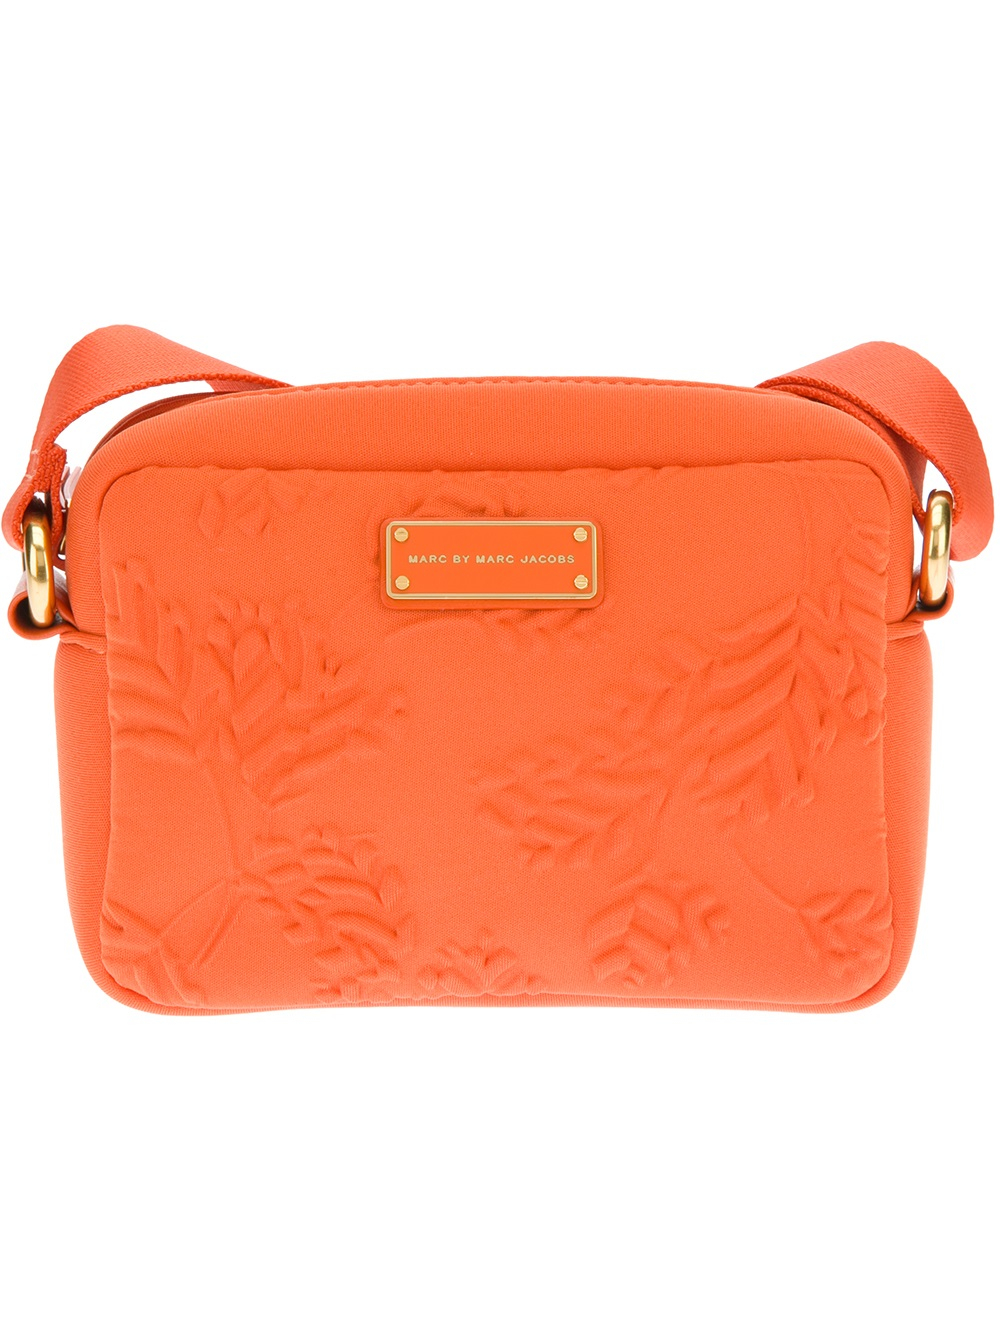 aeba80a3f818 Lyst - Marc By Marc Jacobs Embossed Cross Body Bag in Orange